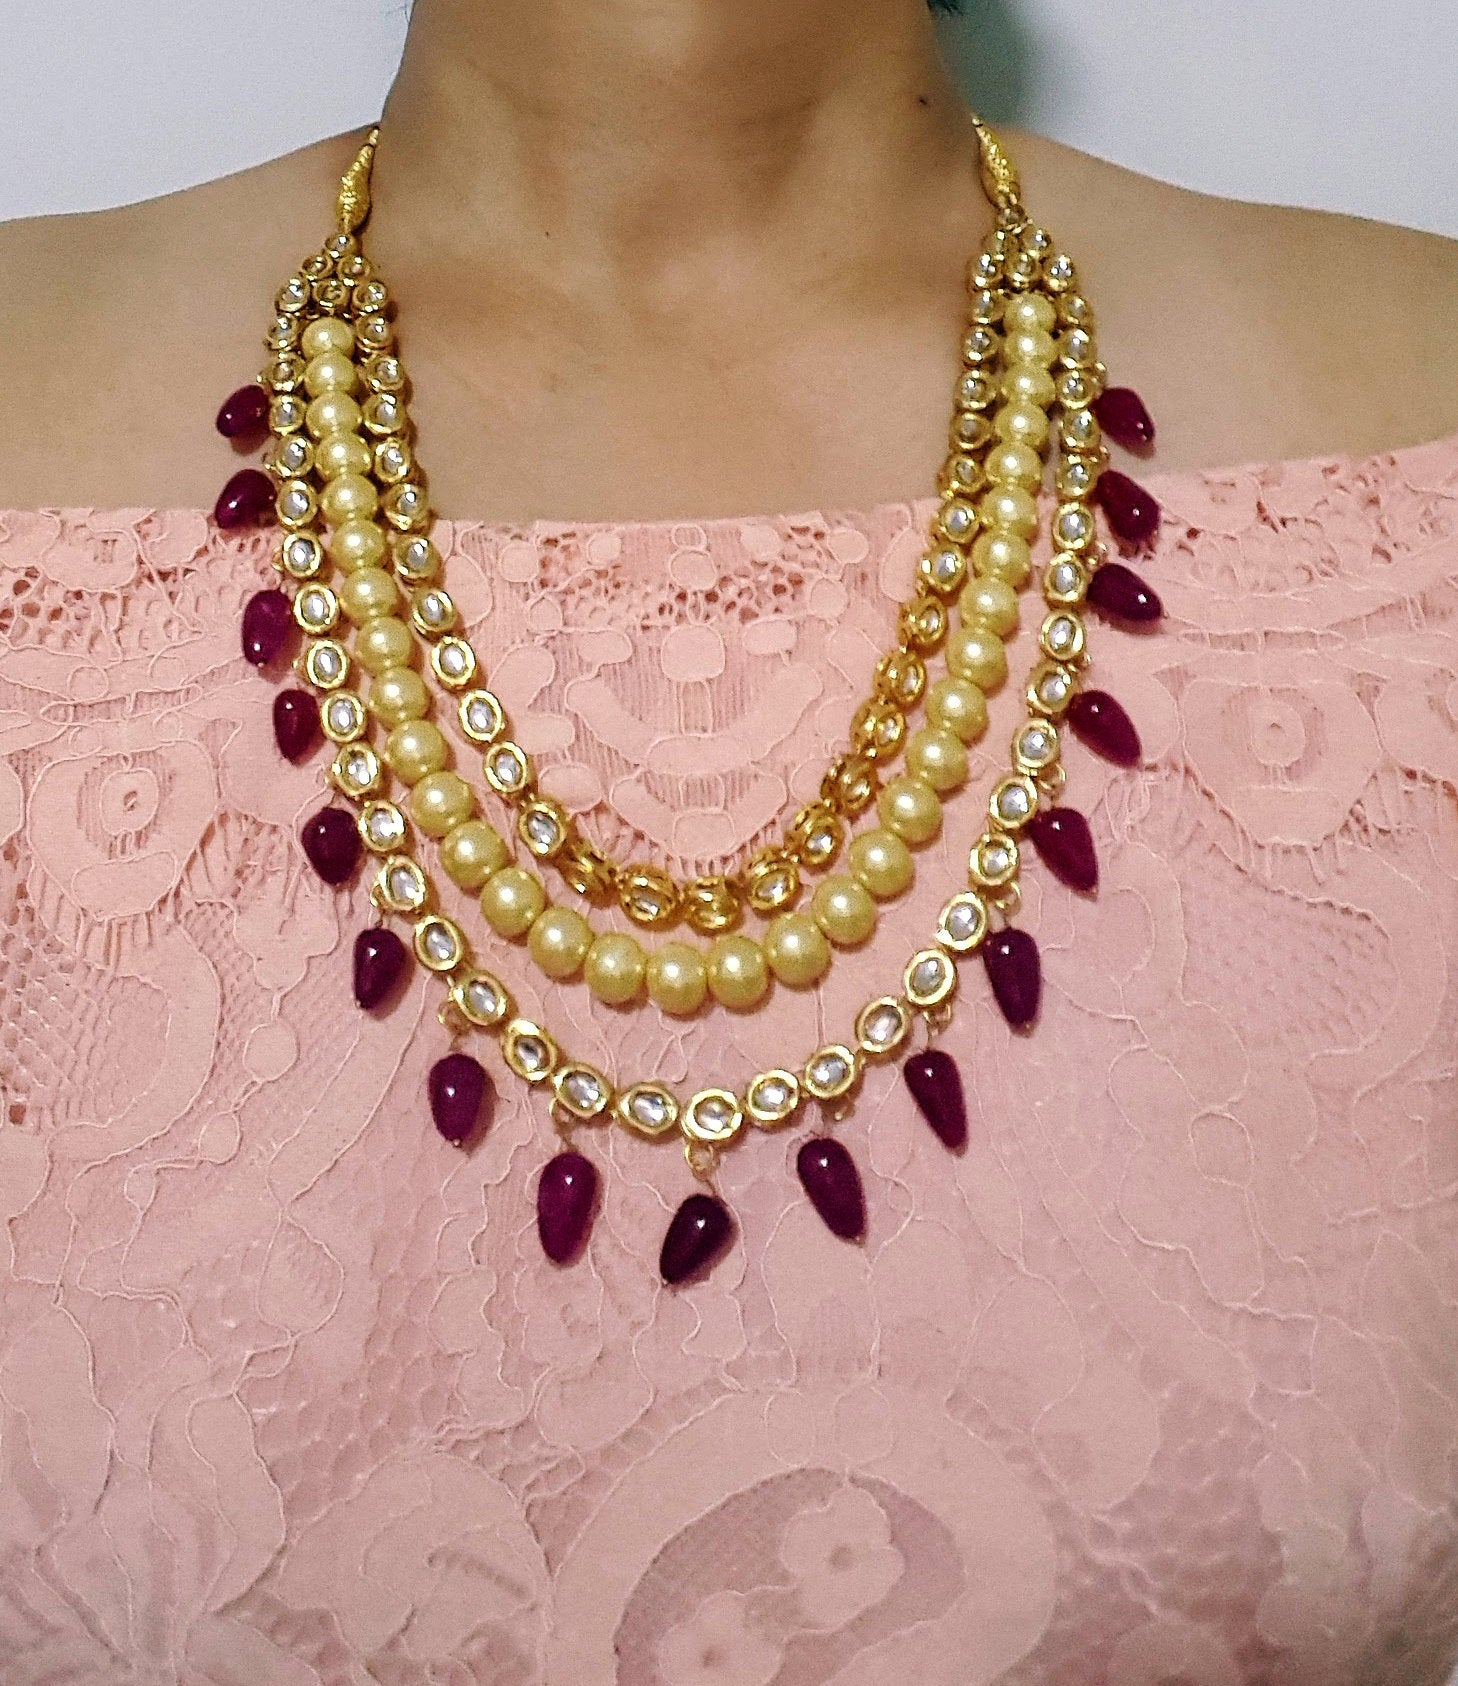 Gorgeous kundan bridal / non-bridal necklace with pearls and red semi-precious stone beads - Pink Chunari